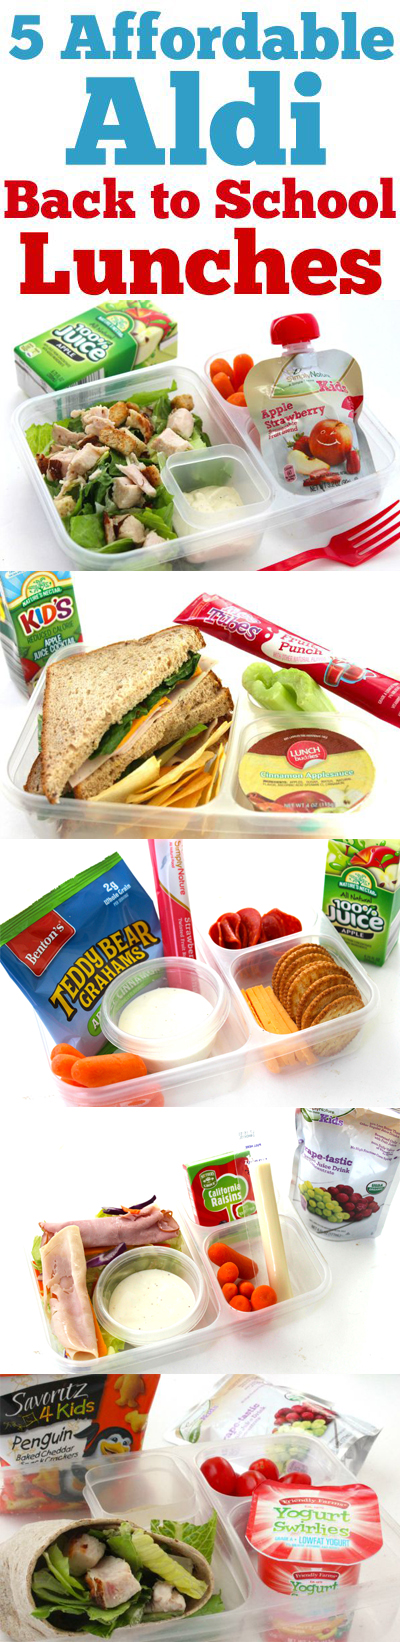 5 Affordable ALDI Back to School Lunches- Shop ALDI and create these 5 affordable and nutritious back to school lunches.